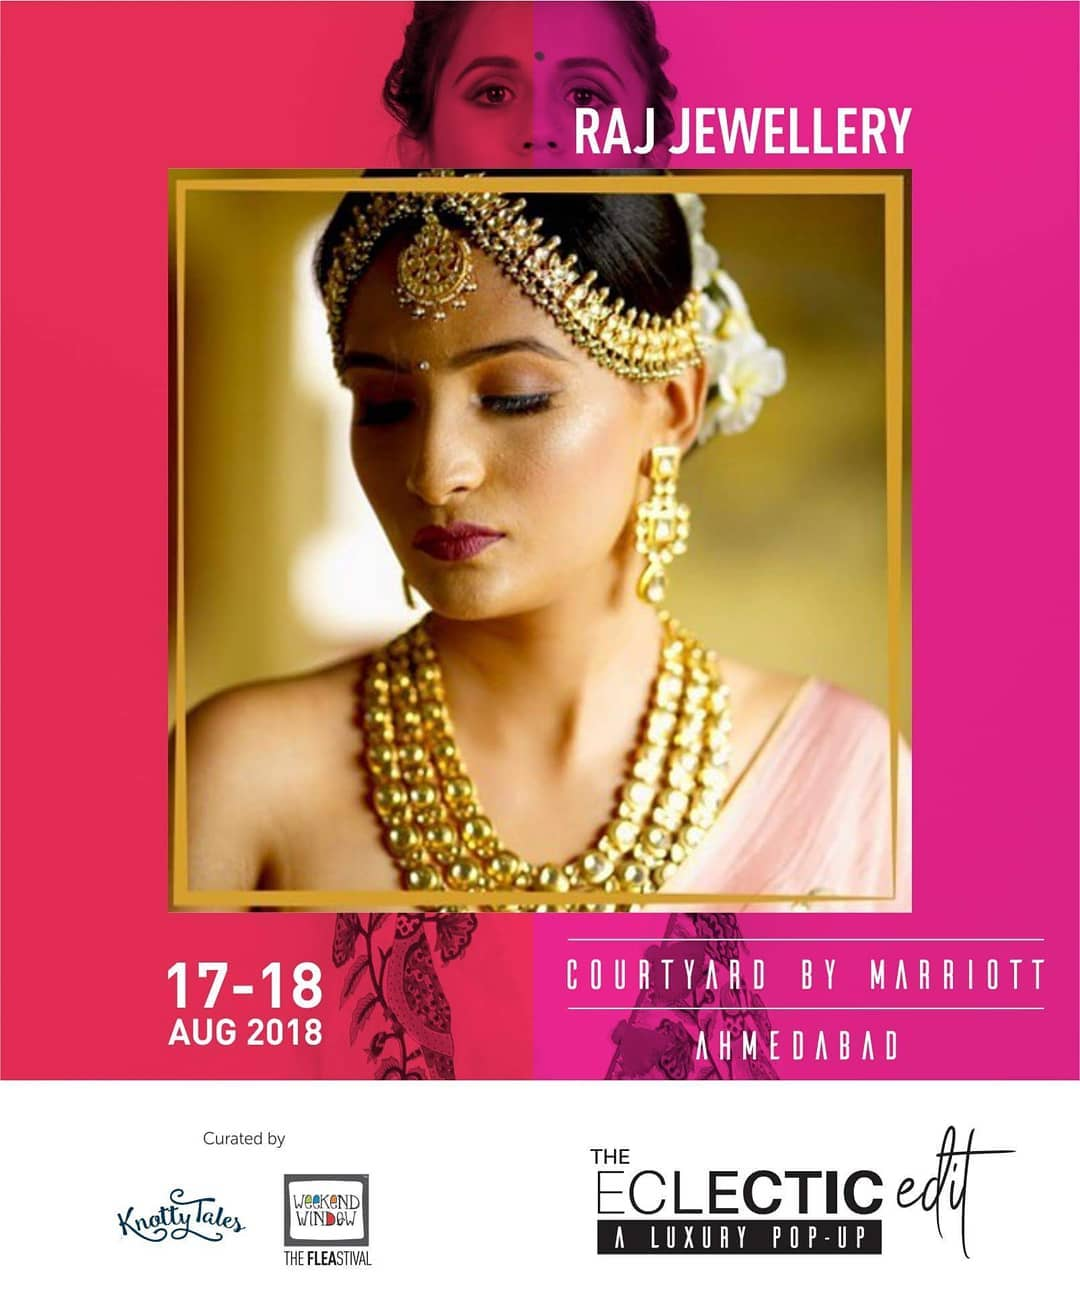 Sterling silver and copper based jewellery that are completely tailor fit to you. With the designs that are timeless and classic, @rajjewellery brings to you a very versatile collection that manifests the ever glowing beauty and flamboyance of every Indian woman.  Add oodles of splendor to your aesthetic look with heavy jadtar necklace adorned with pink and blue meenakari work.  #rajjewellery #wedzo #weddingjewellery #bridaljewellery #jadtar #jadtarjewelry #gold #craft #jewels #heritagejewellery #antiquejewelry #meenakarijewellery #royaljewels #handcraftedjewelry #jadaujewellery #theeclecticedit #knottytales #weekendwindow #aluxurypopup